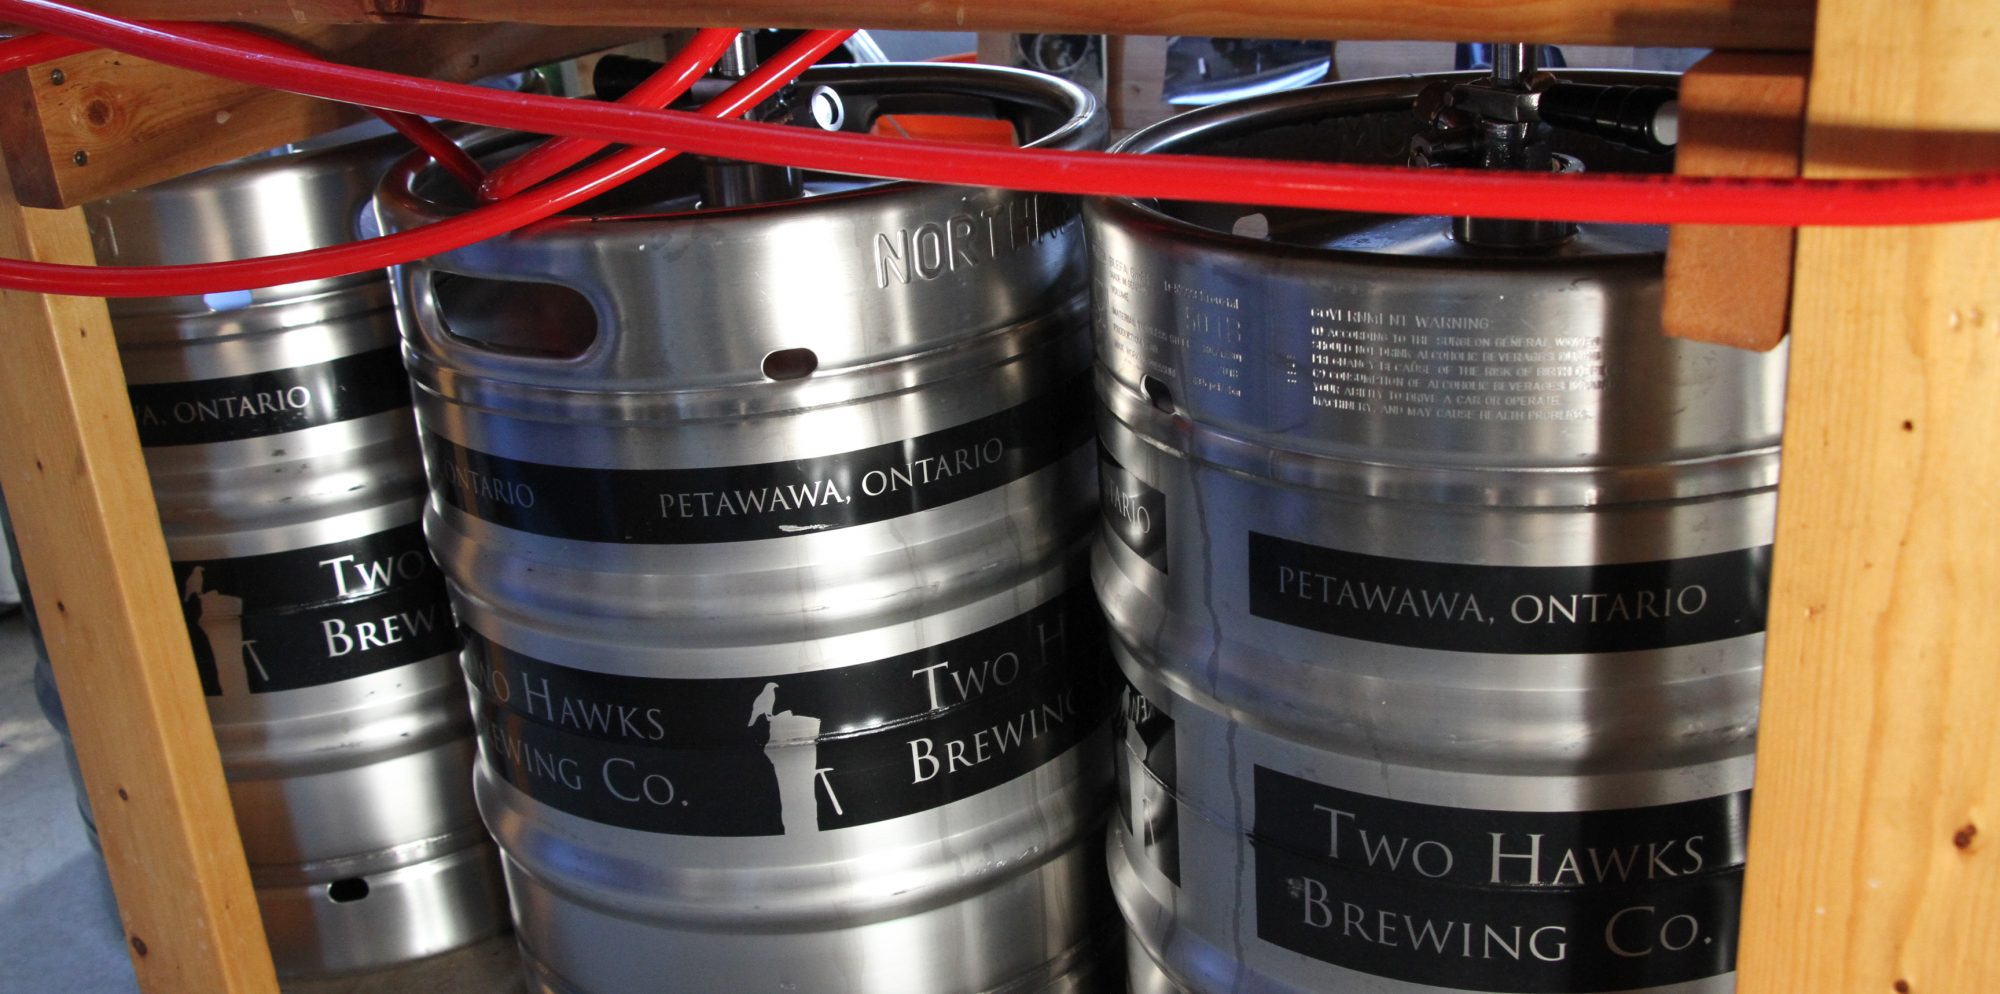 Two Hawks Brewing Co.